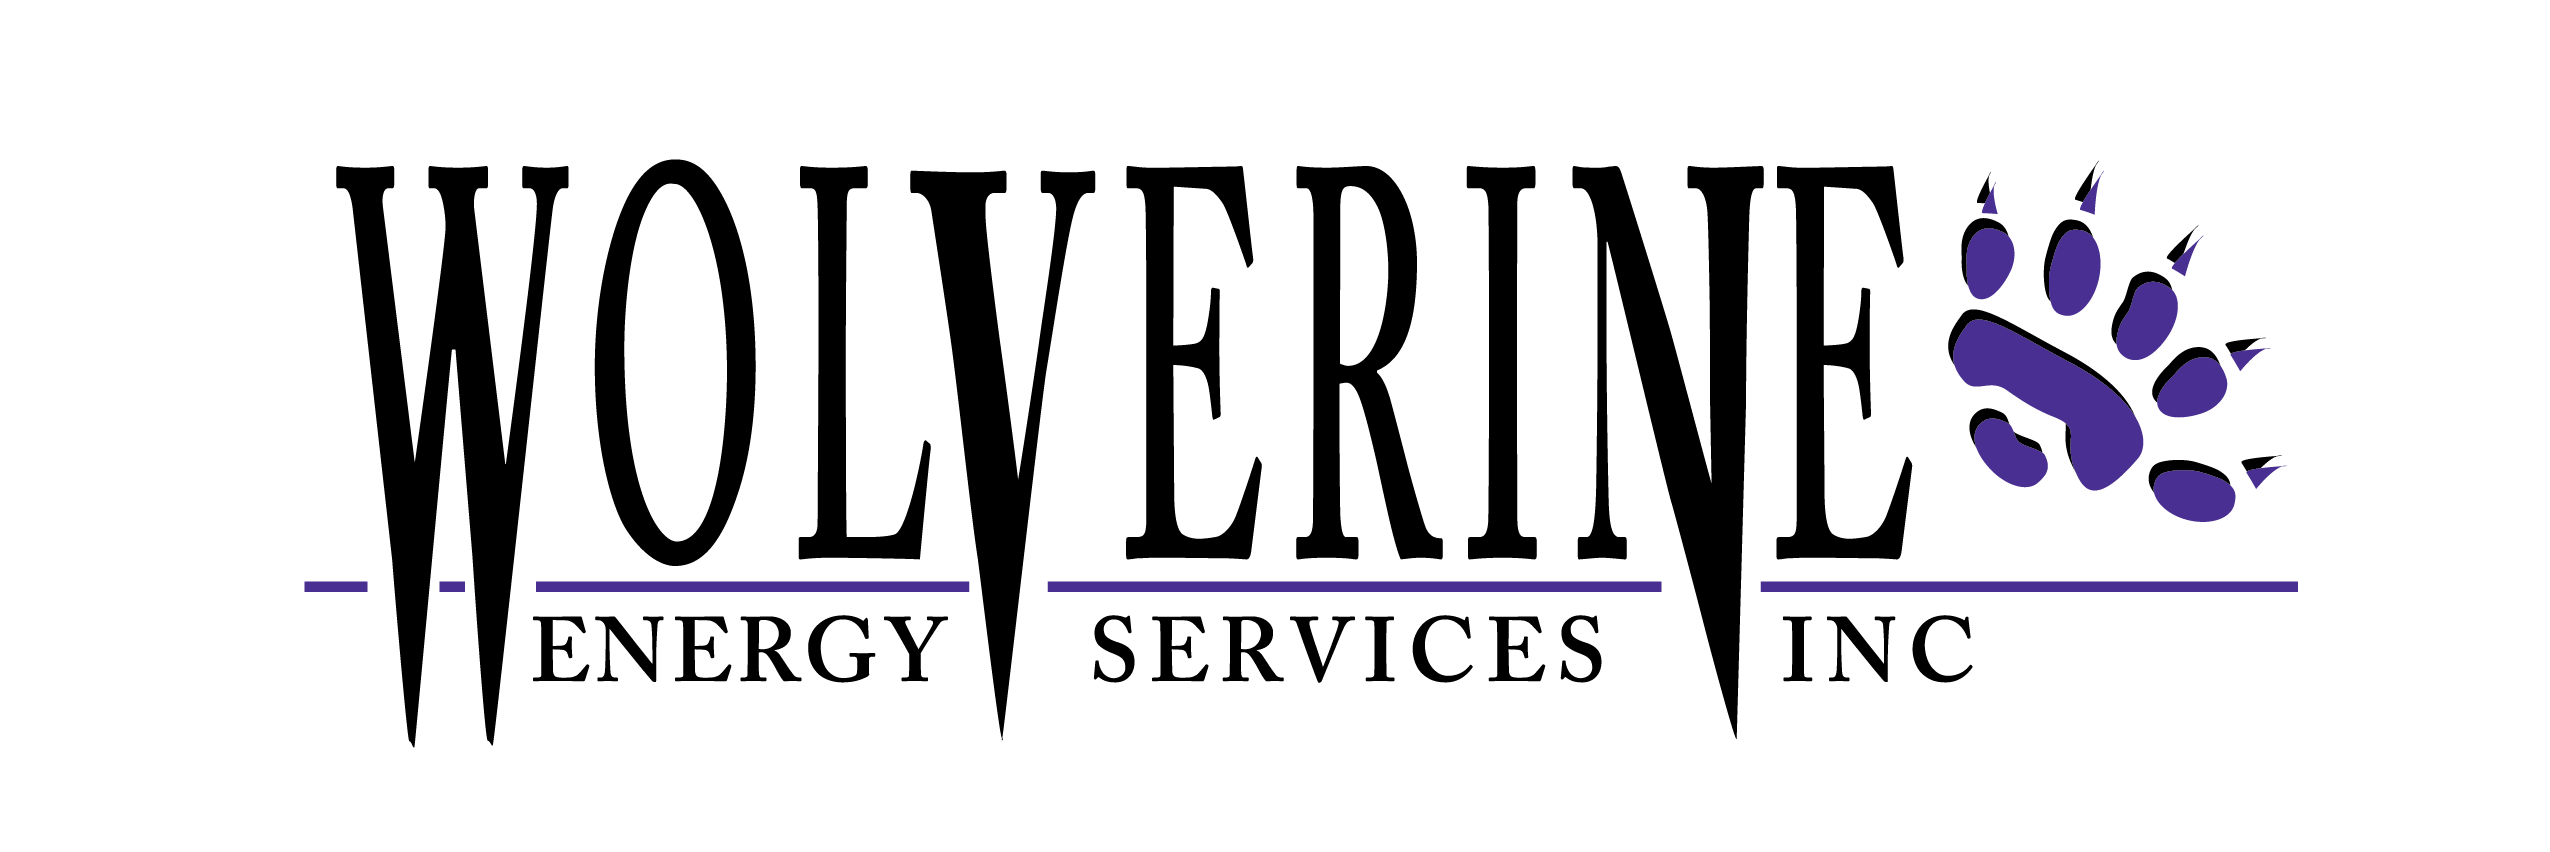 Wolverine energy services calgary oil and gas services